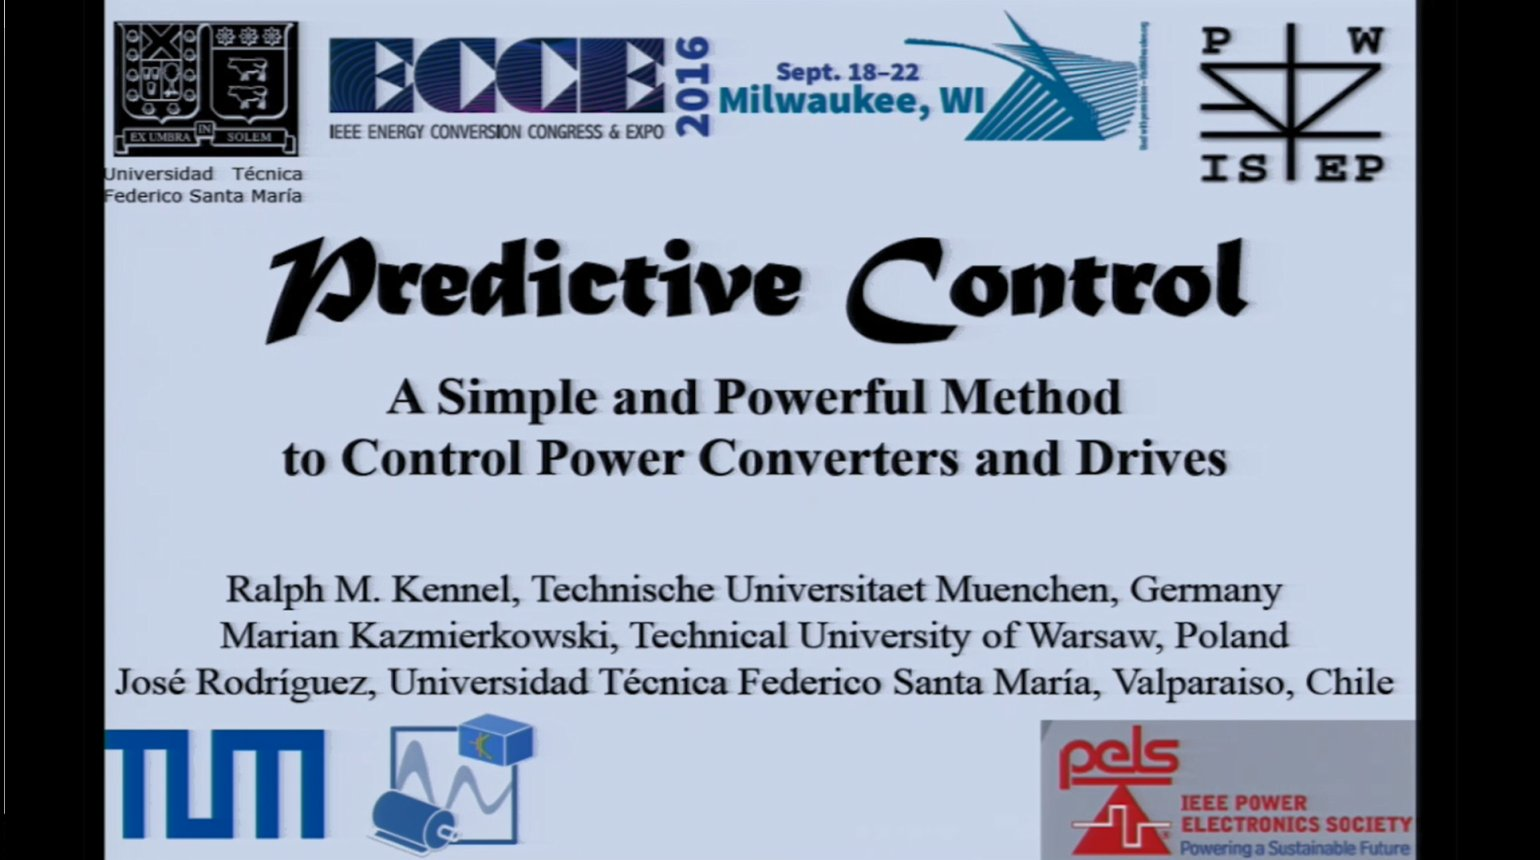 Predictive Control - A simple and Powerful Method of Control Power Converters and Drives